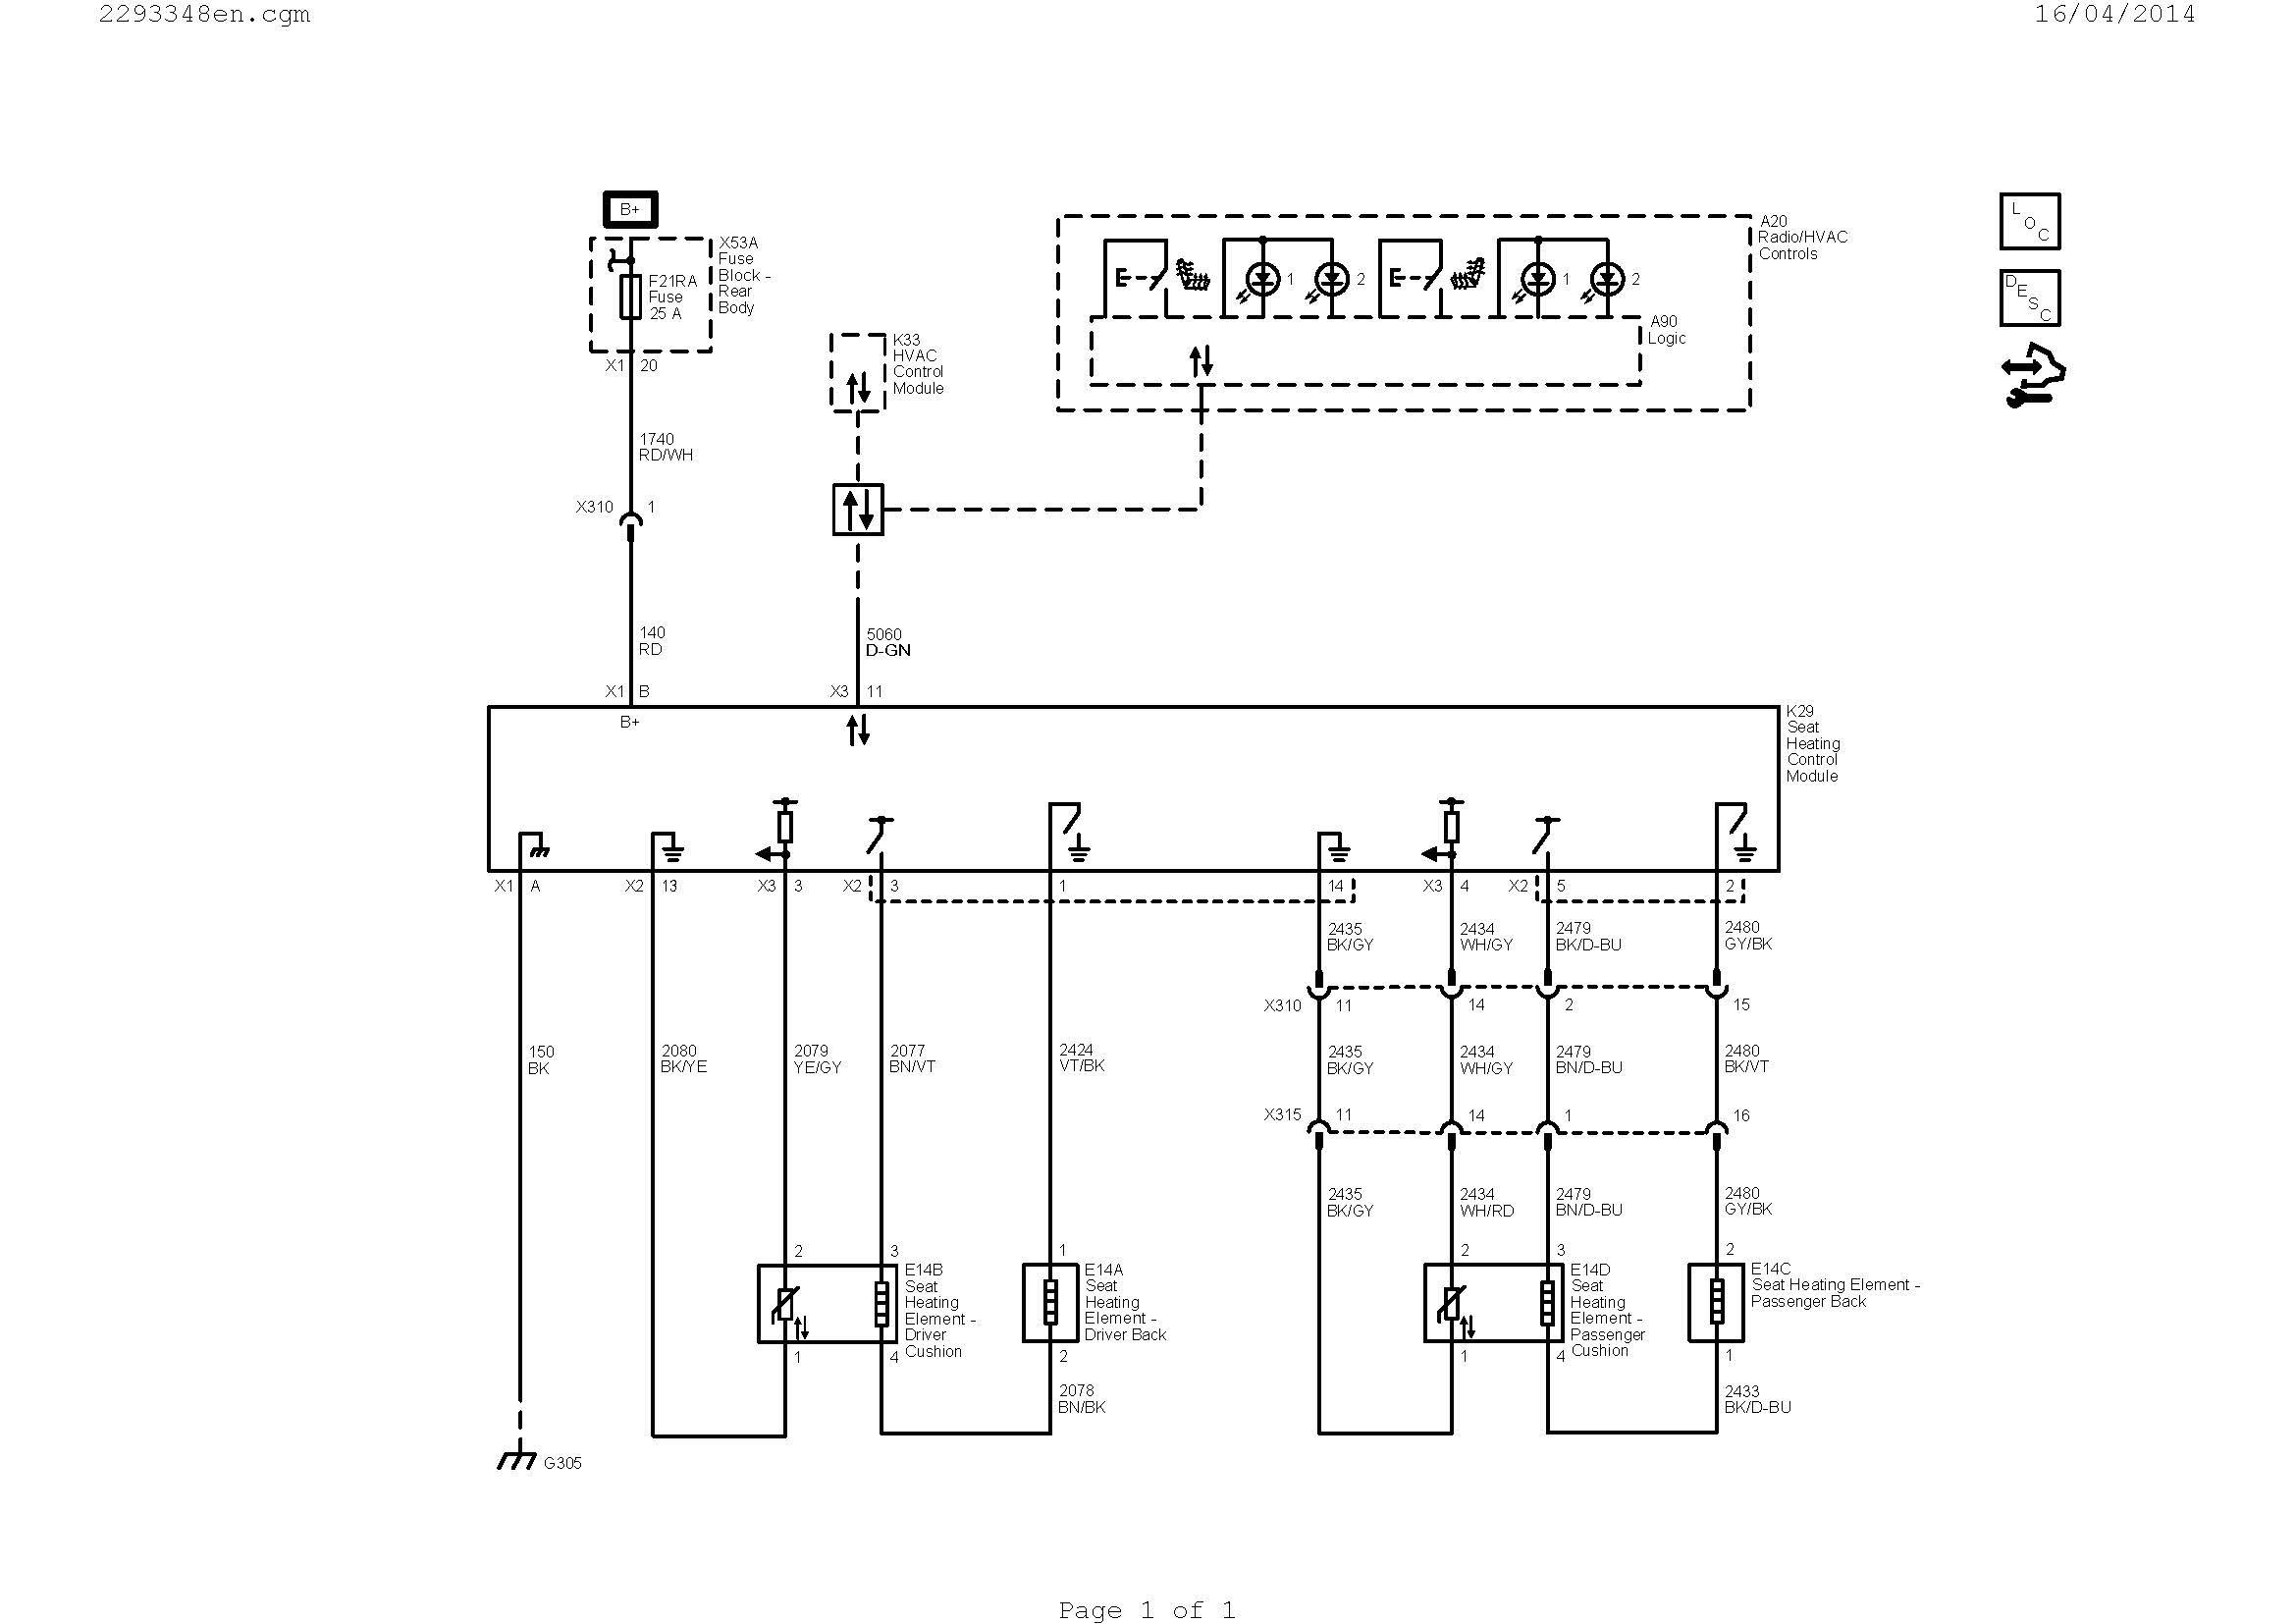 White Rodgers Thermostat Wiring 1f82 51